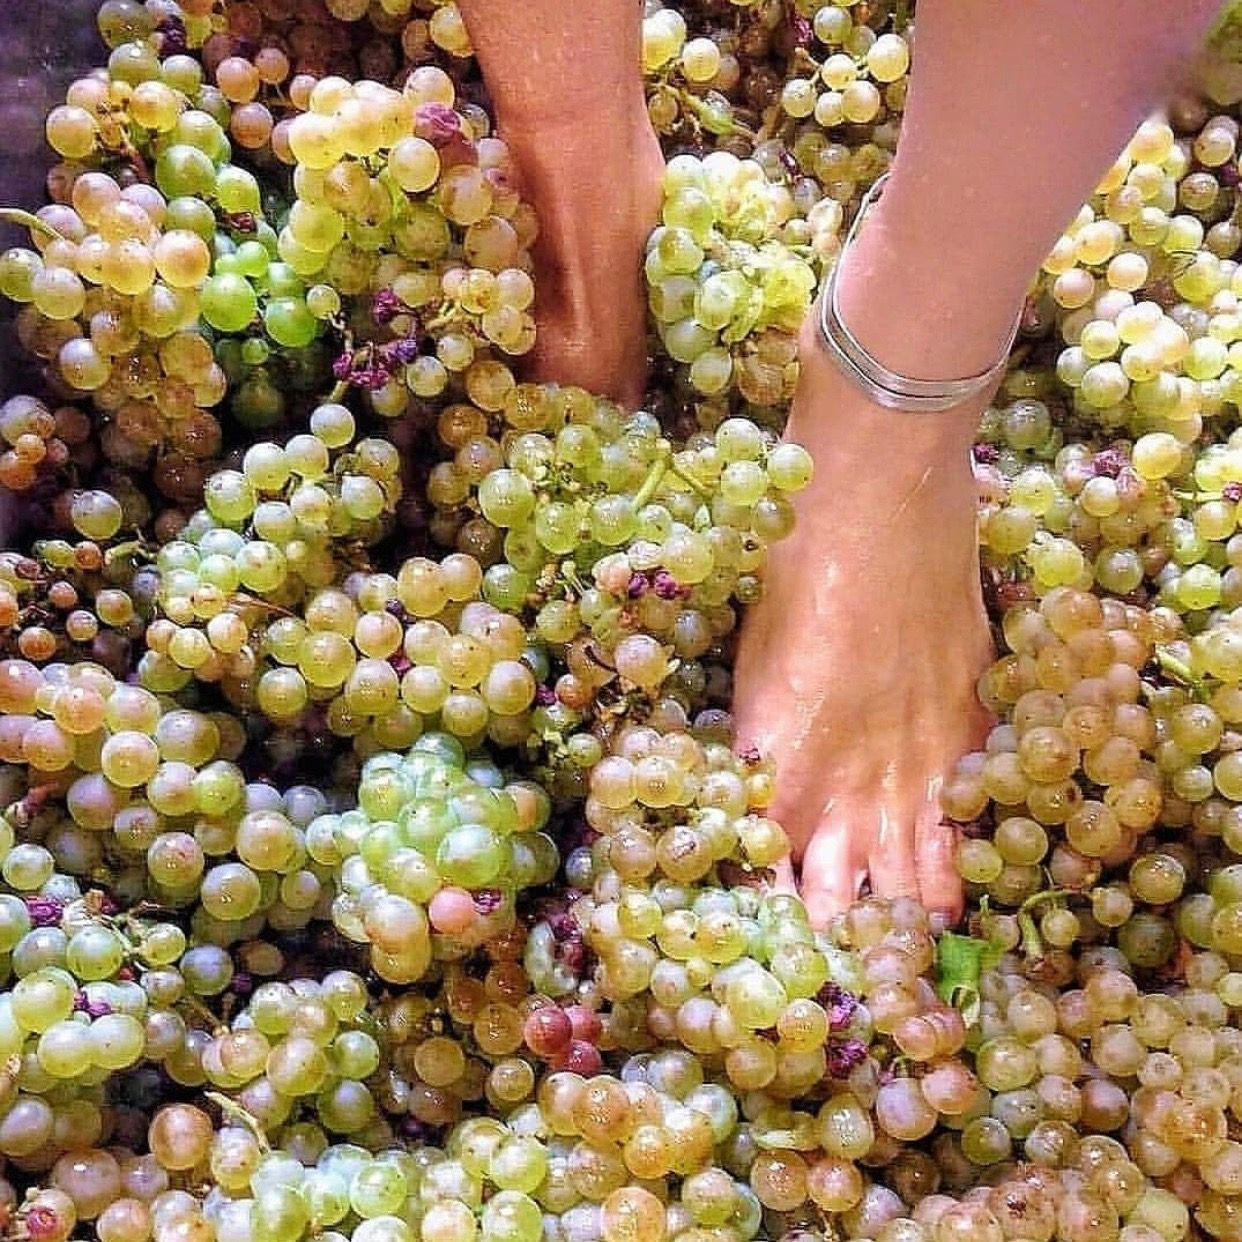 Its always my dream to try stepping on those grapes its